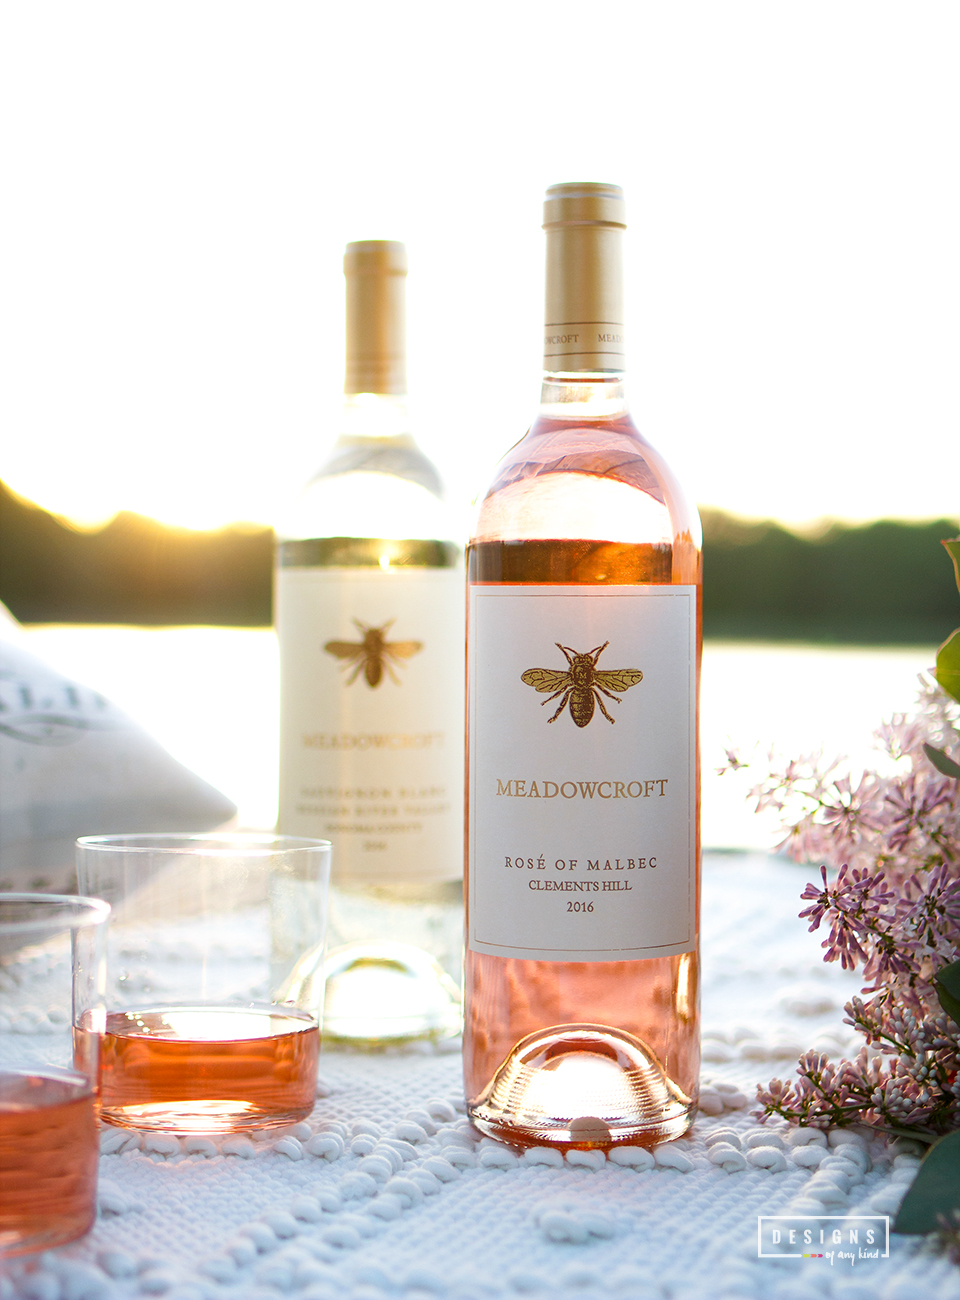 How to have an impromptu summer picnic in style. Enjoy a relaxing sunset picnic on the lake with that special someone as you feast on a beautiful cheese plate paired with delicous Meadowcroft wines. Discover more at www.designsofanykind.com